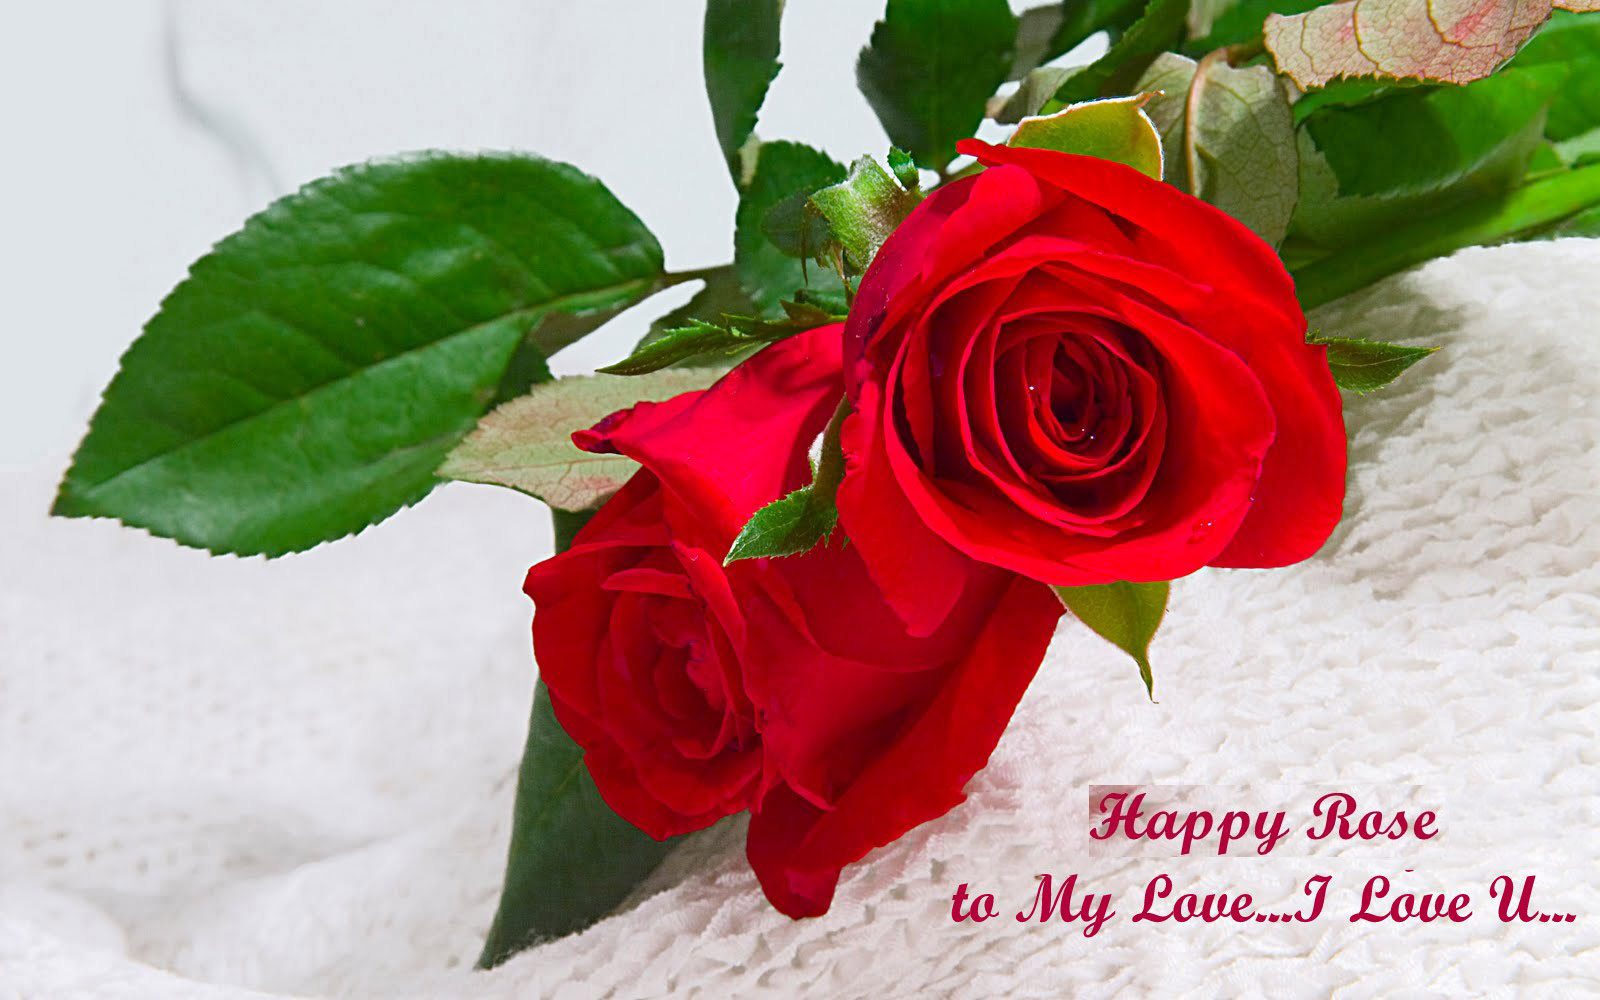 rose flower i love you wallpaper